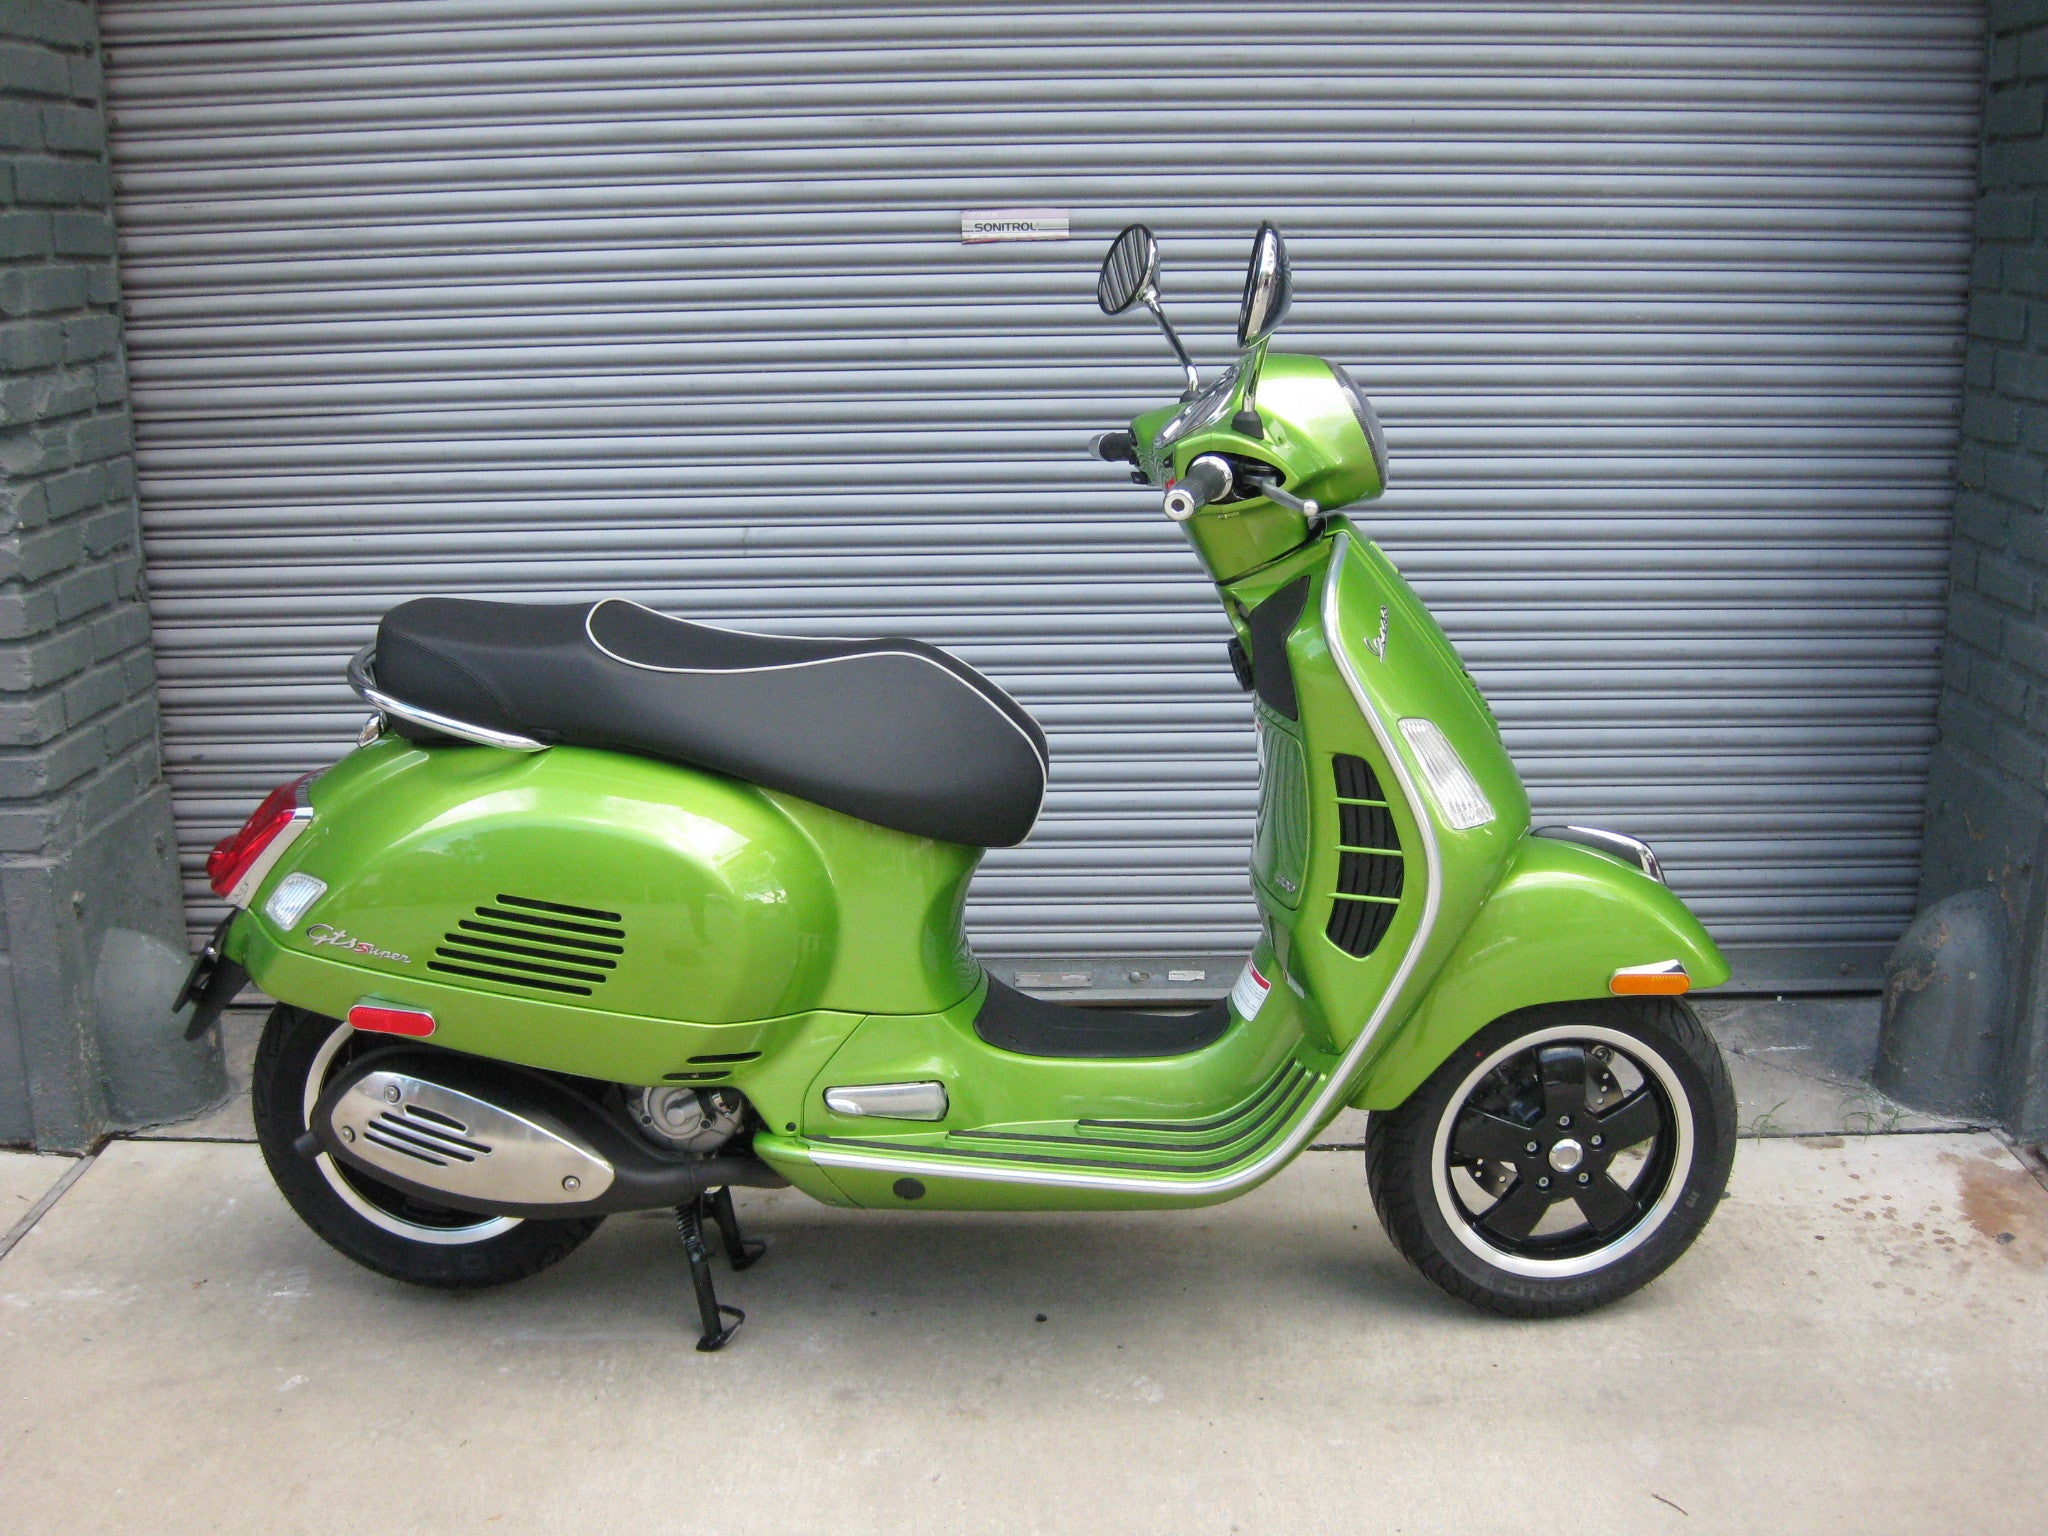 2018 vespa gts 300 super verde speranza the. Black Bedroom Furniture Sets. Home Design Ideas